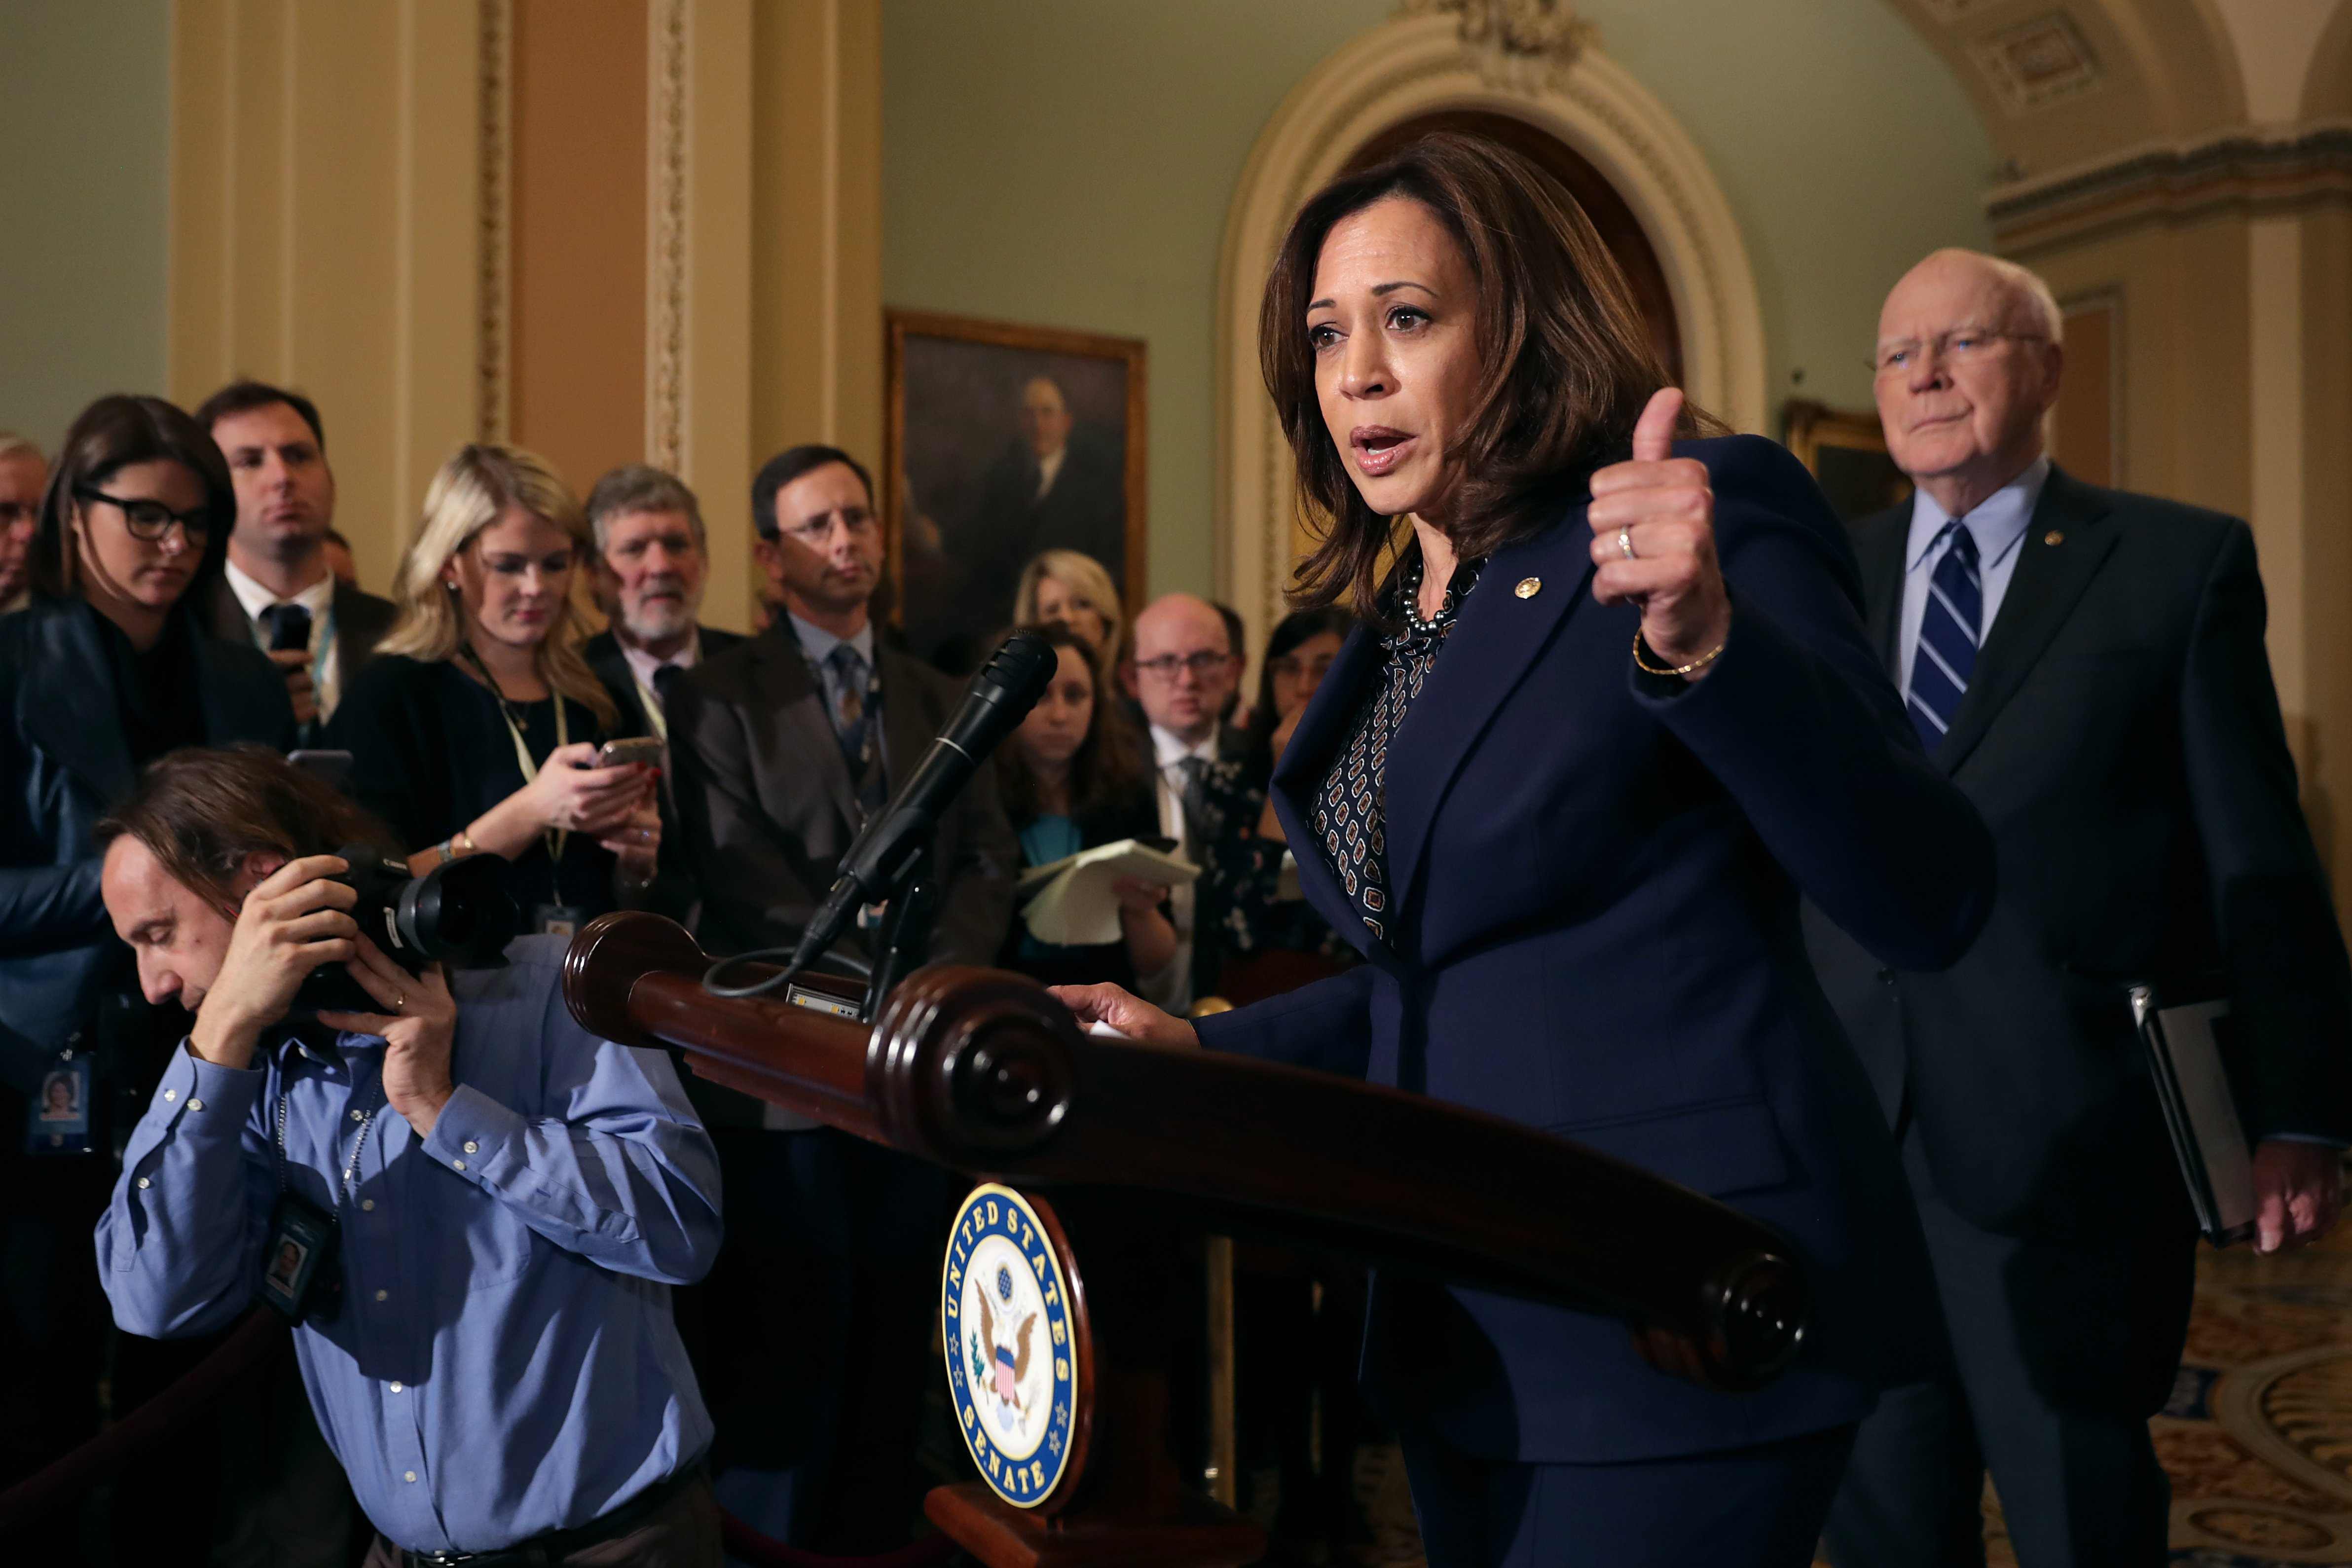 Sen. Kamala Harris talks to reporters with Sen. Patrick Leahy (R) following the weekly Democratic Senate policy luncheon in the U.S. Capitol November 27, 2018 in Washington, DC. (Photo by Chip Somodevilla/Getty Images)